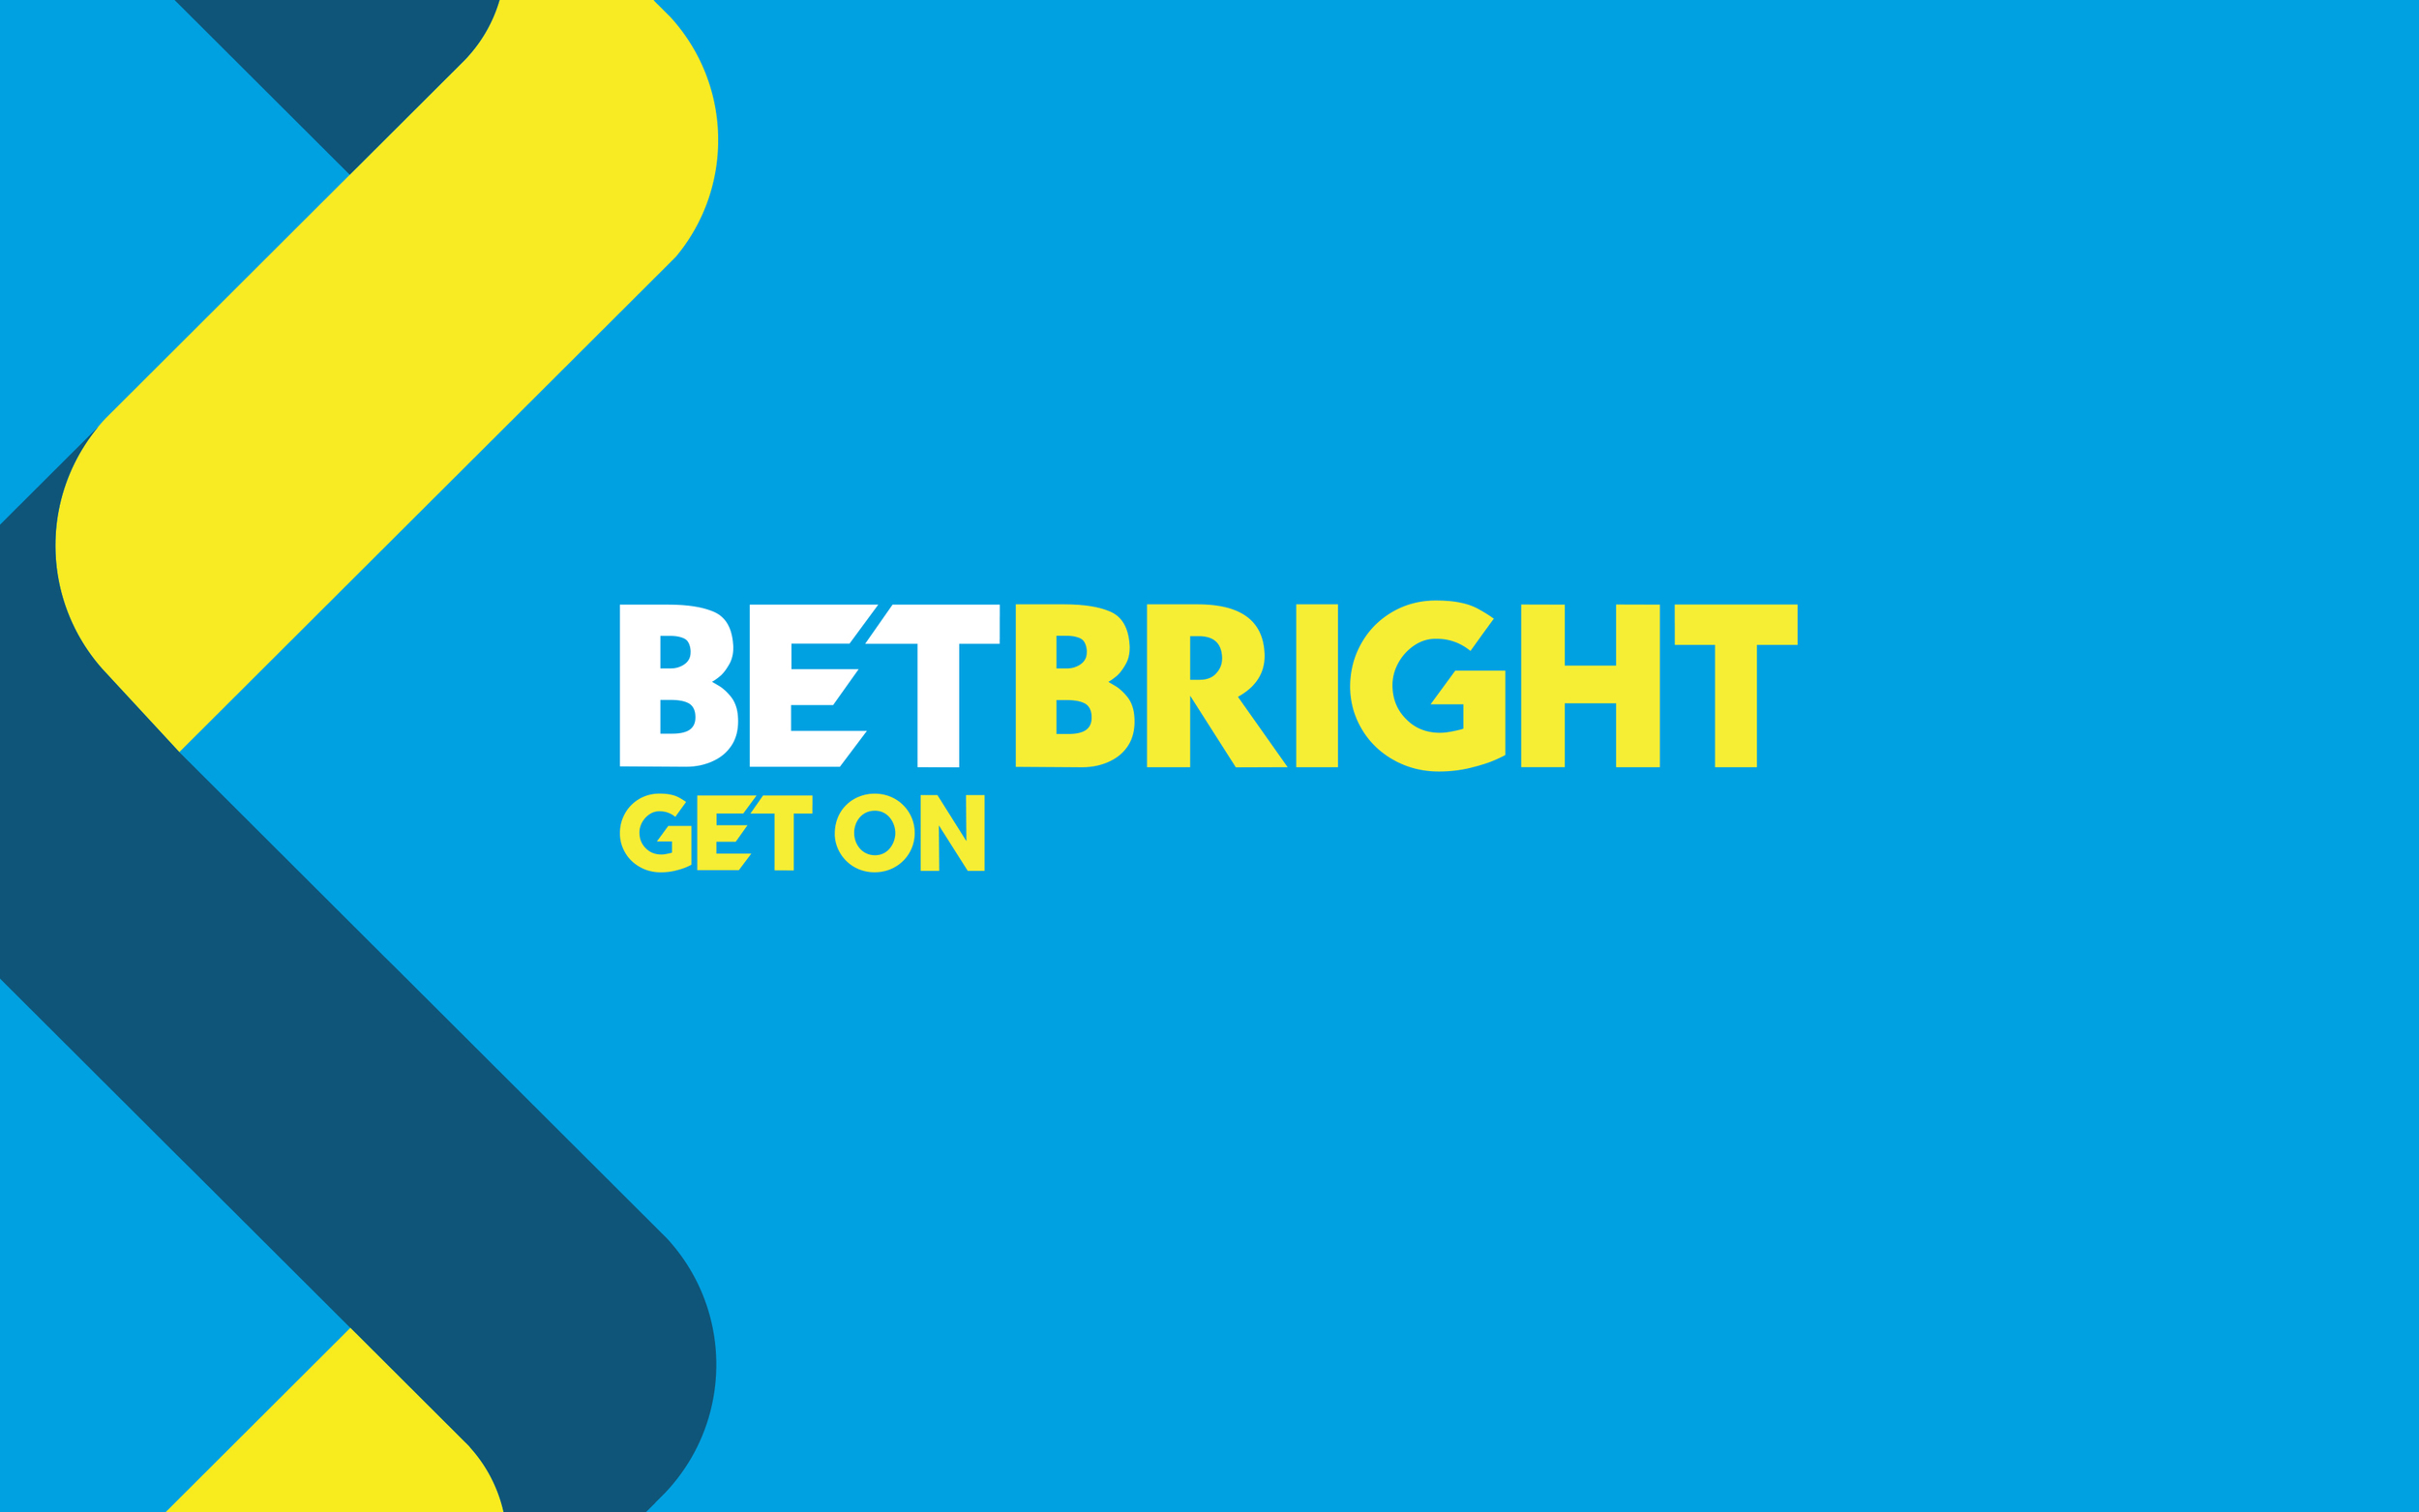 BetBright-GET-ON-Wallpaper.jpg